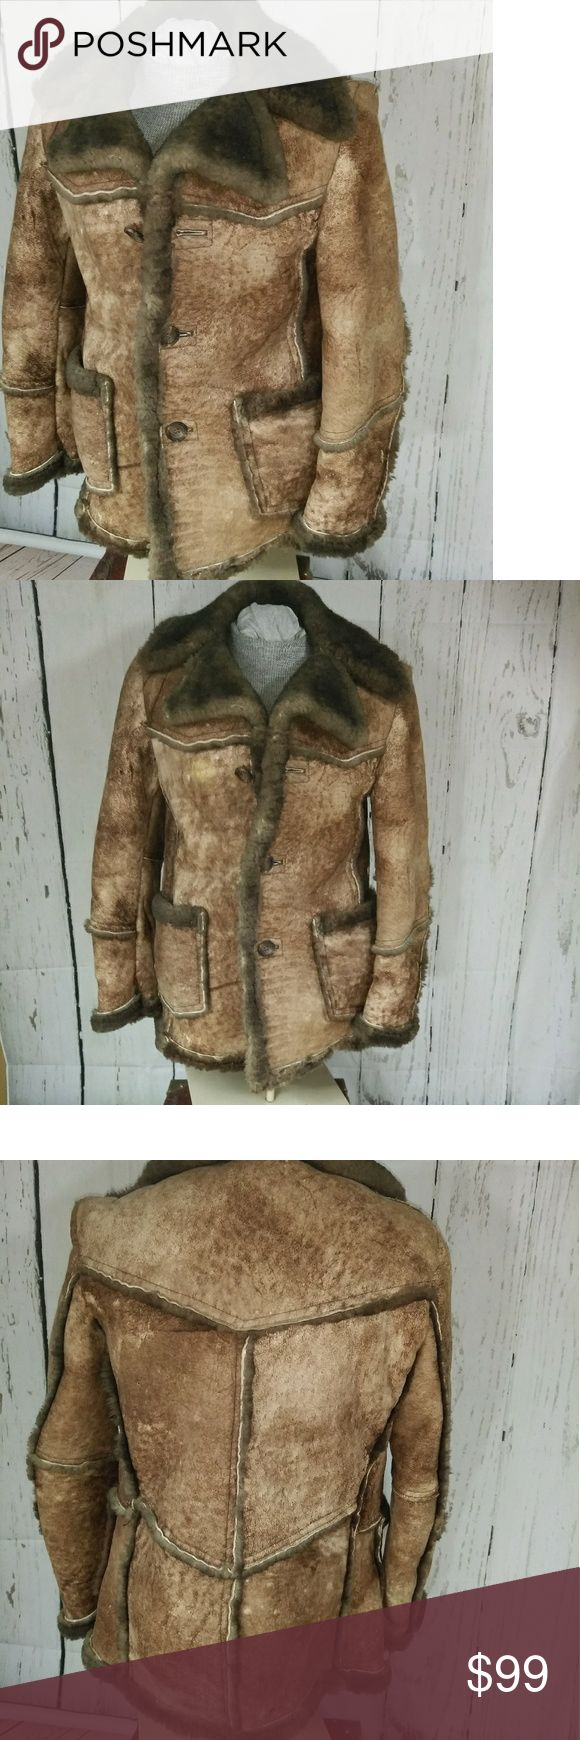 """Shearling sheepskin leather vtg distressed coat SM Gorgeous coat.  Genuine shearling sheepskin.  It is not in perfect condition.  There is a little of the fur missing here and there.  It just has a distressed look. It is marked a 36 which would be a men's small so a ladies medium.  Measurements are :40"""" chest,  38"""" waist, 30 1/2"""" length, 19"""" shoulders, 26 1/2"""" sleeves.  The color is tan and brown. Jackets & Coats Pea Coats"""